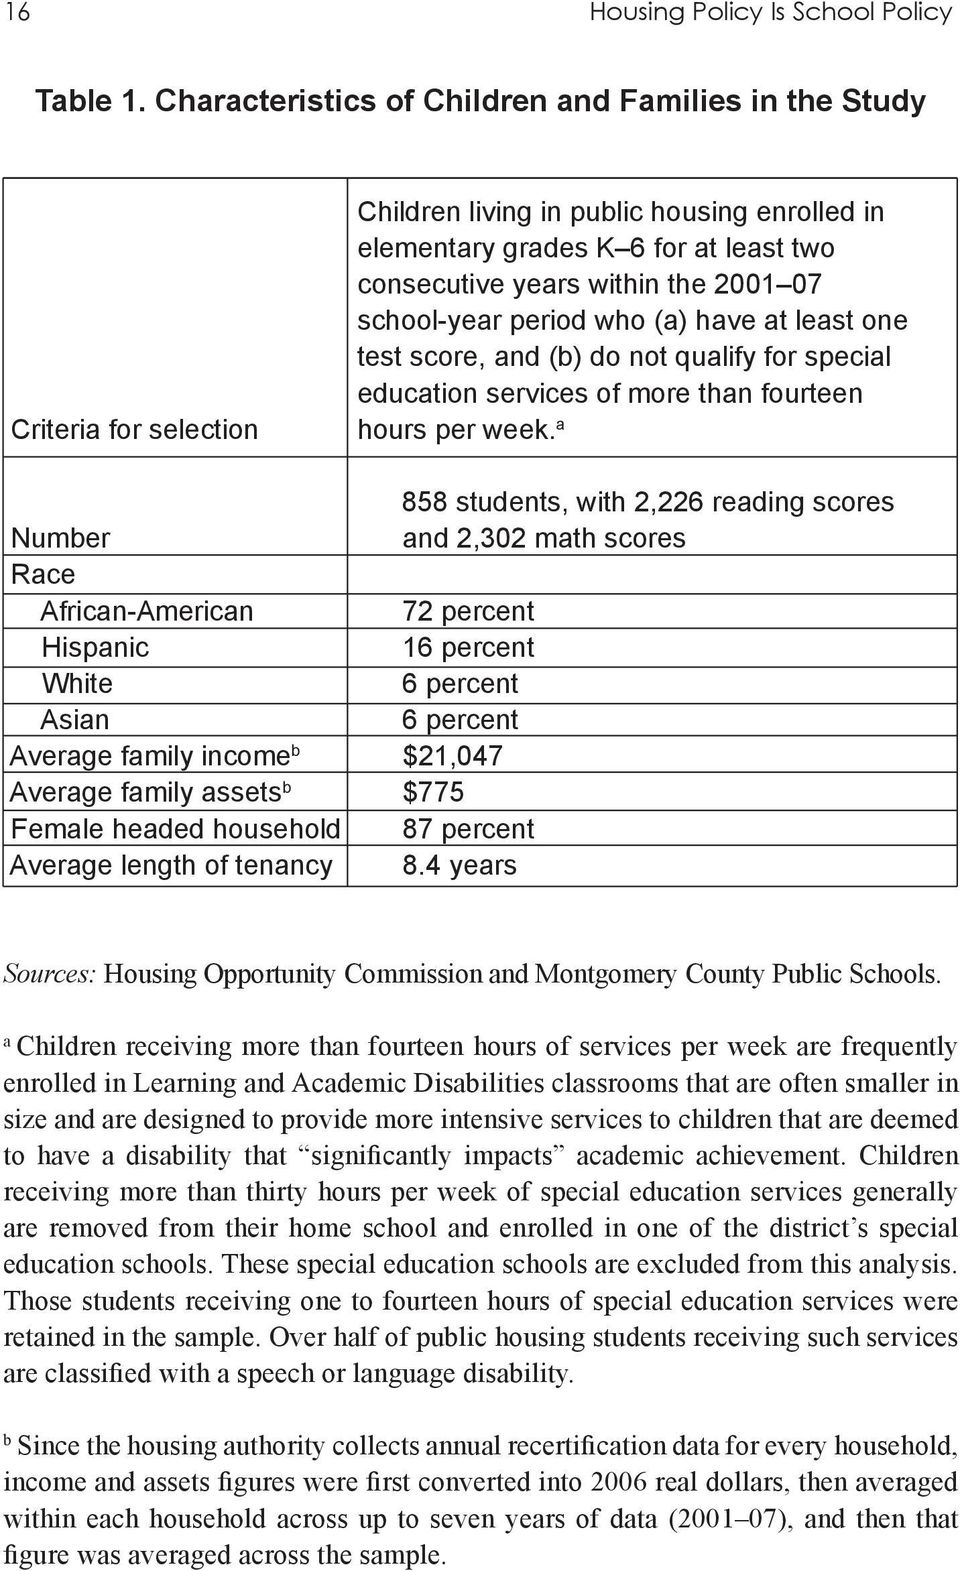 school-year period who (a) have at least one test score, and (b) do not qualify for special education services of more than fourteen hours per week.